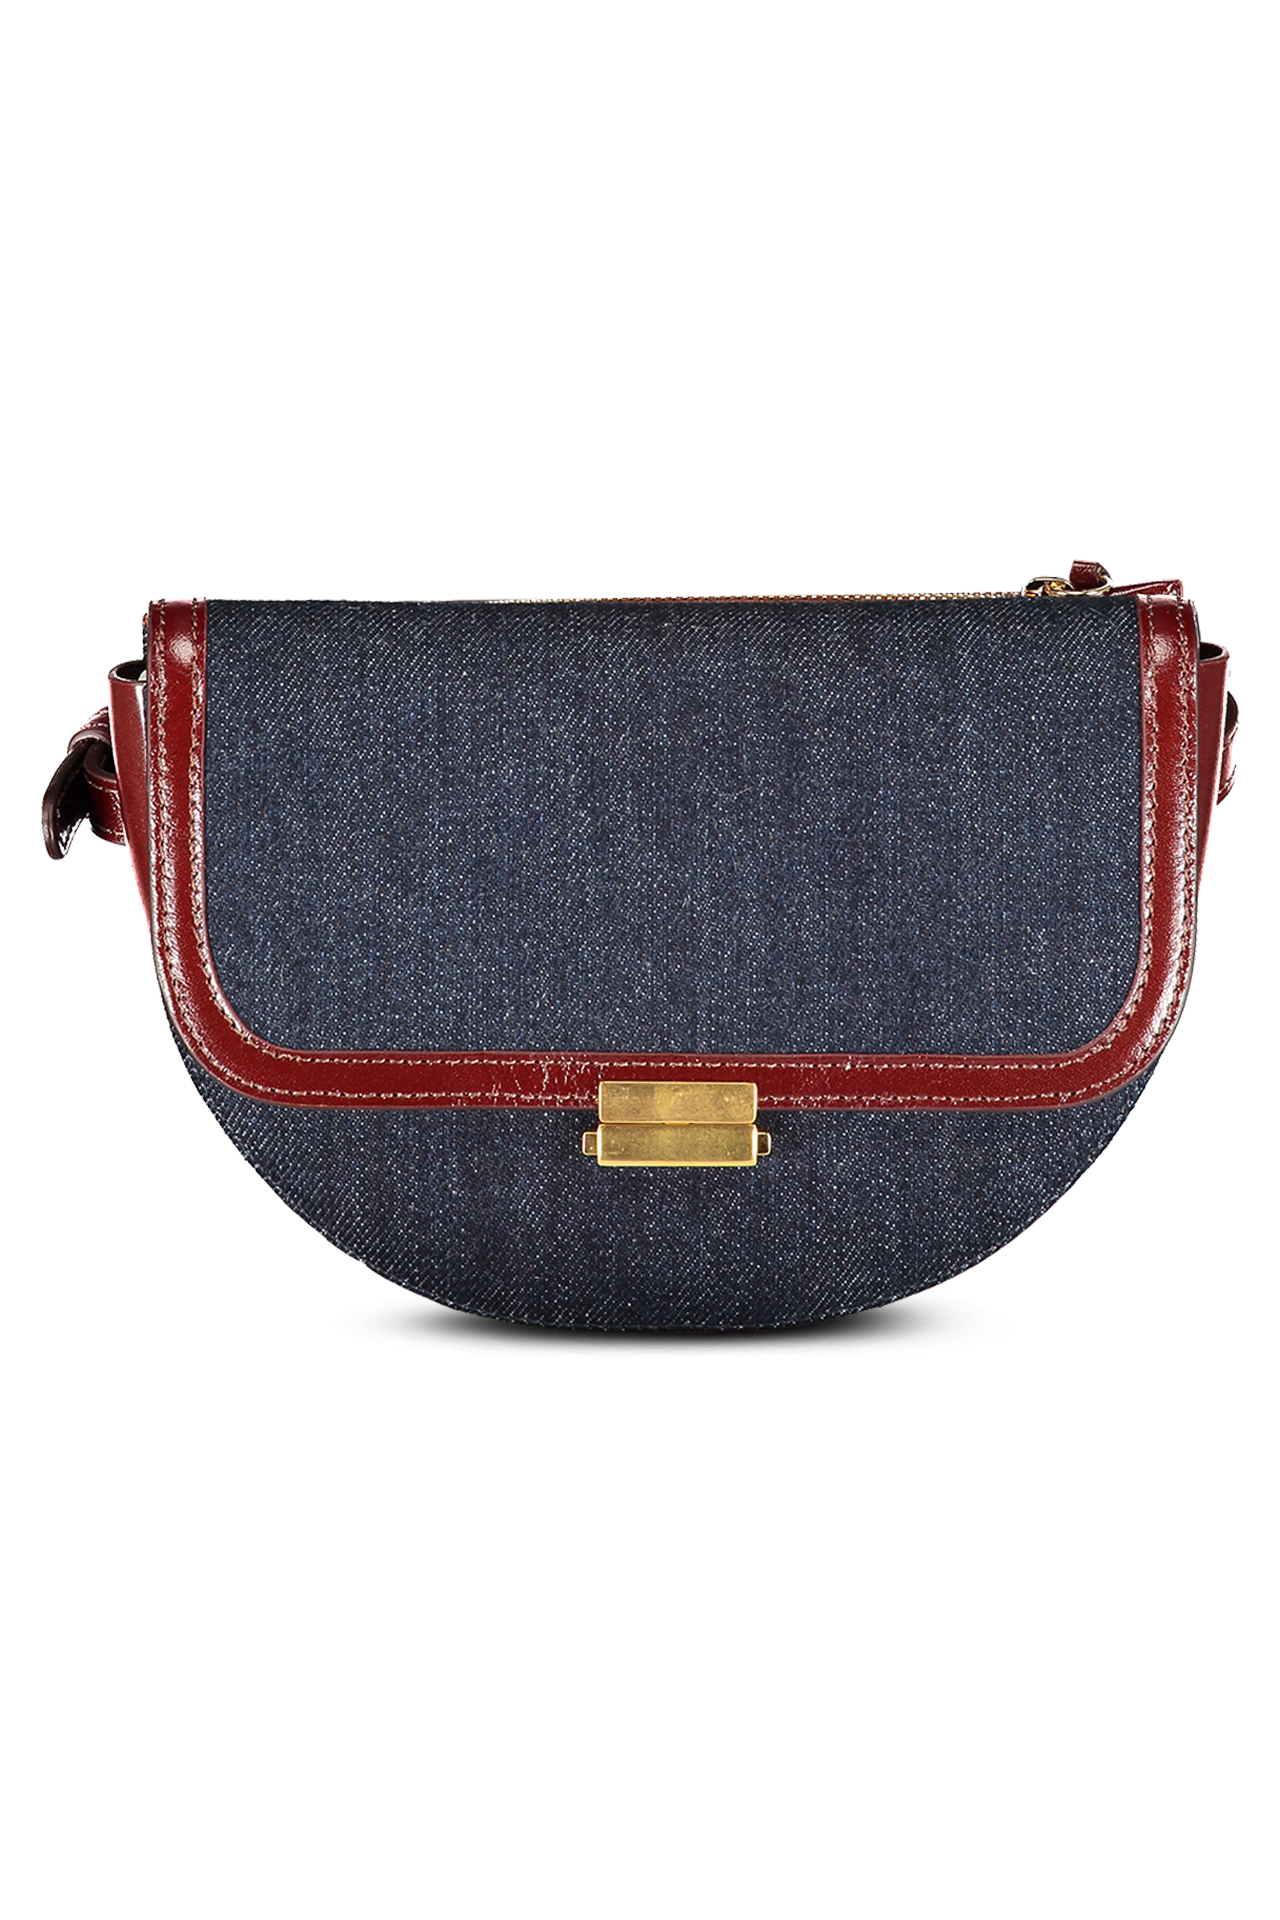 Front image of Wandler Anna Belt Bag Big Denim Leather Mix Denim/Syrup